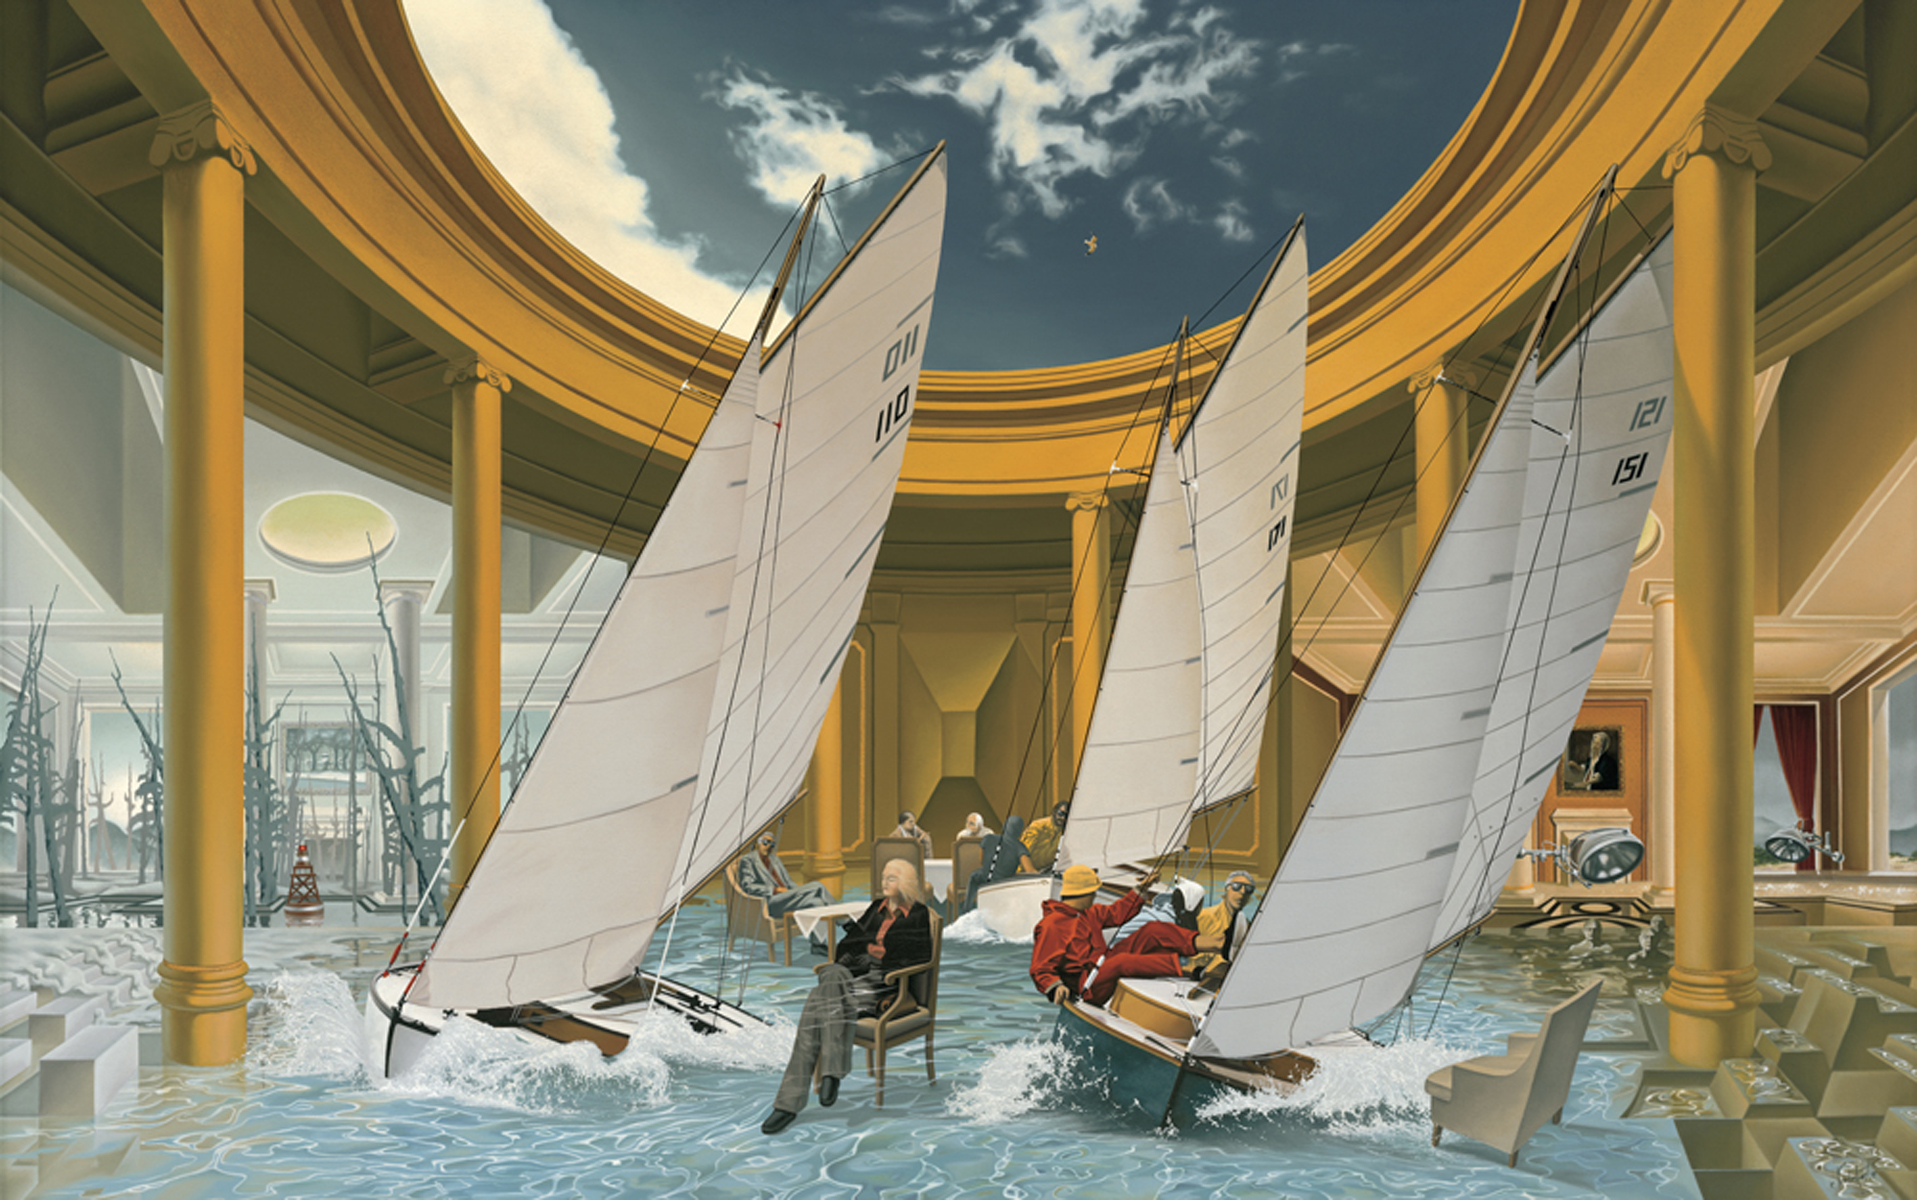 """6.    THE YACHT CLUB    1979, 56"""" x 36"""", Oil on Canvas - SOLD - Private Collection    In a columned room open to the sky, members of the Yacht Club close their eyes and daylight dreams of sailors race through their minds."""